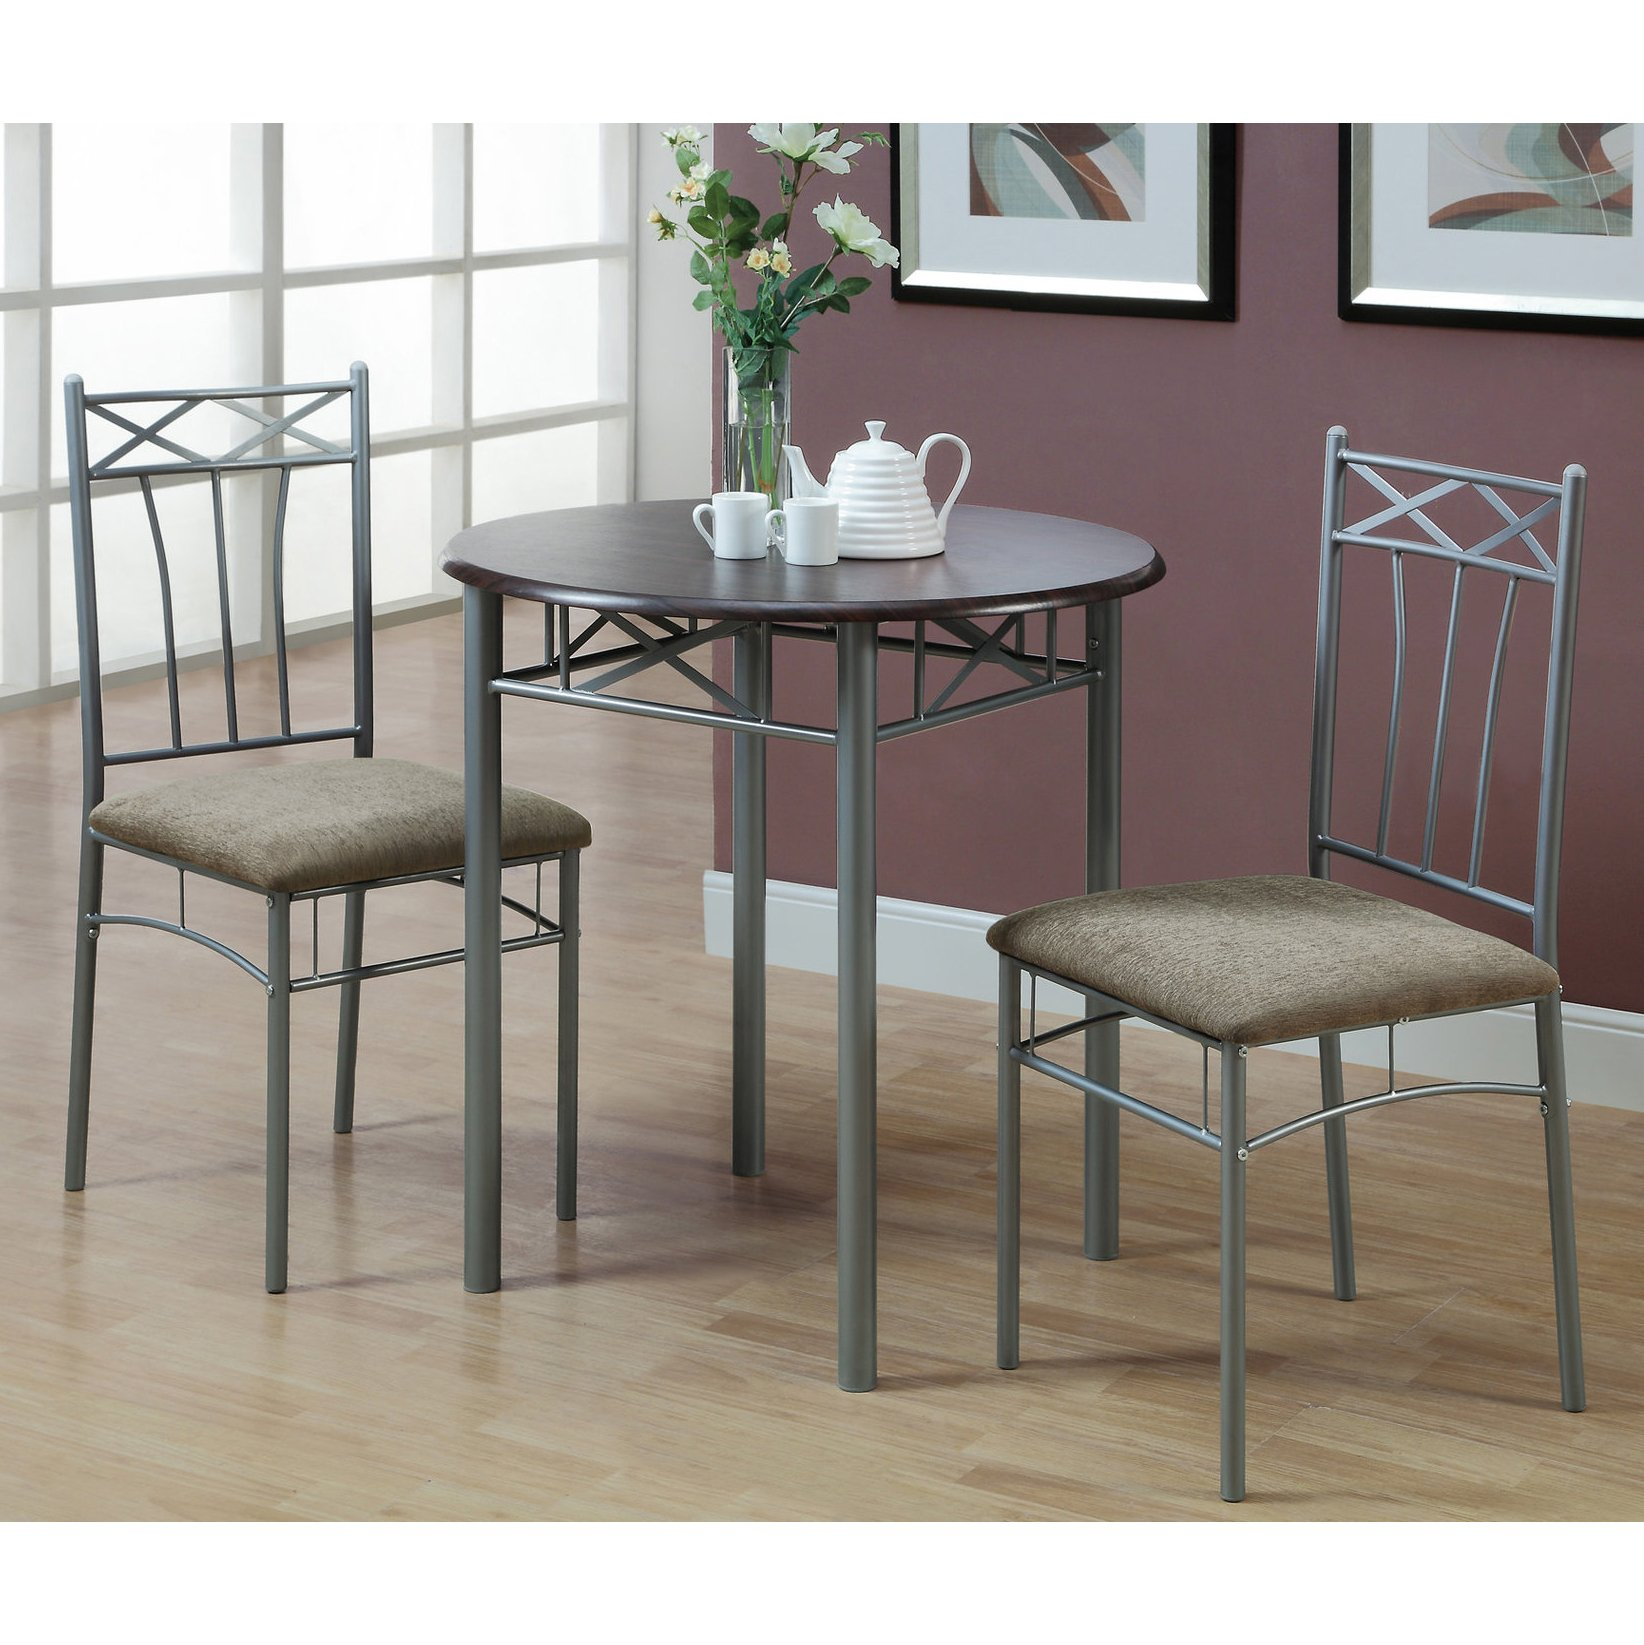 Monarch Specialties Cappuccino Finish Wood and Silver Metal Bistro Dining Set, 3-Piece by Monarch Specialties